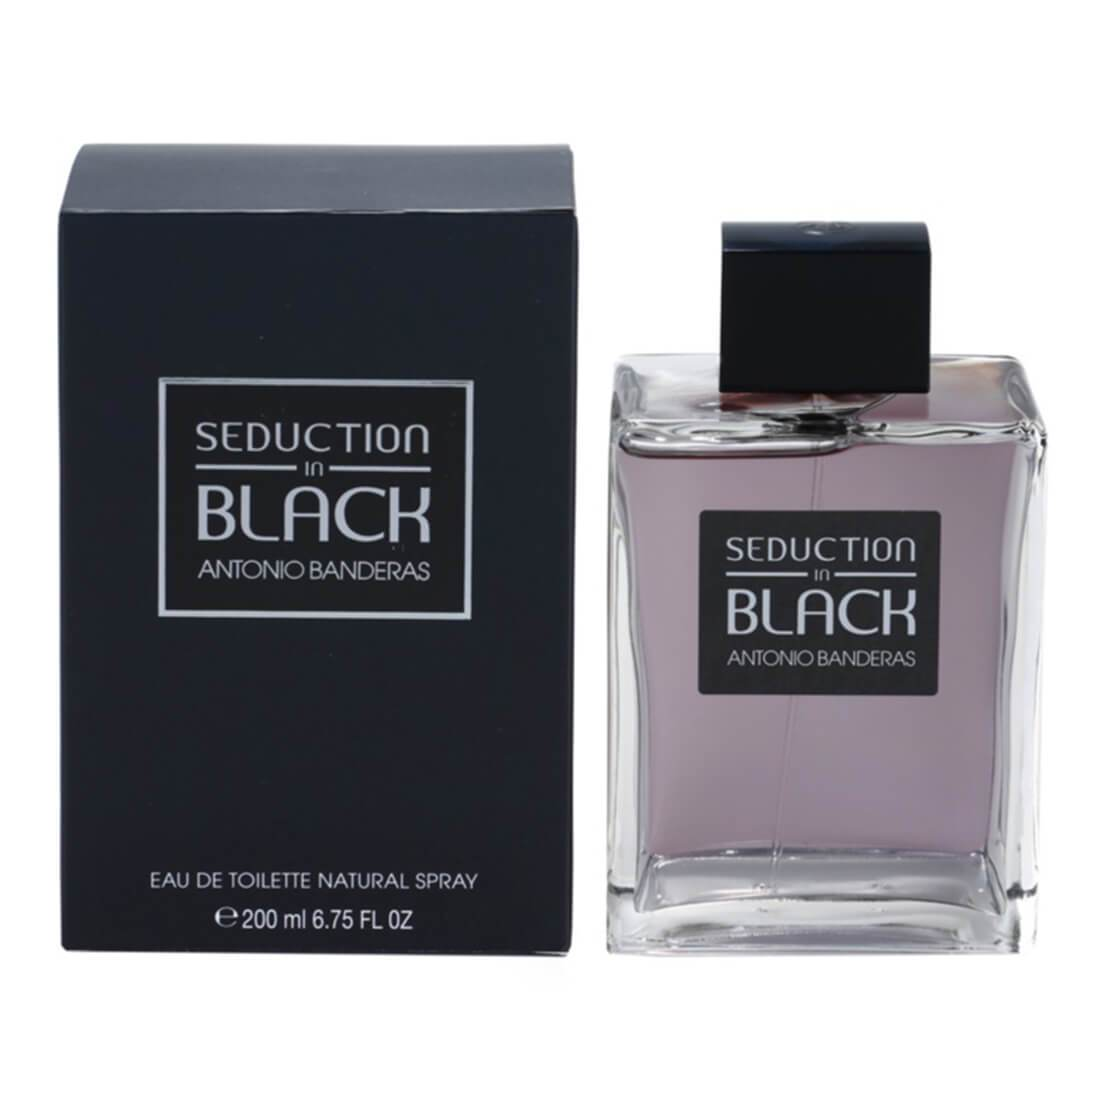 Antonio Banderas Seduction in Black For Men Perfume EDT 100ML